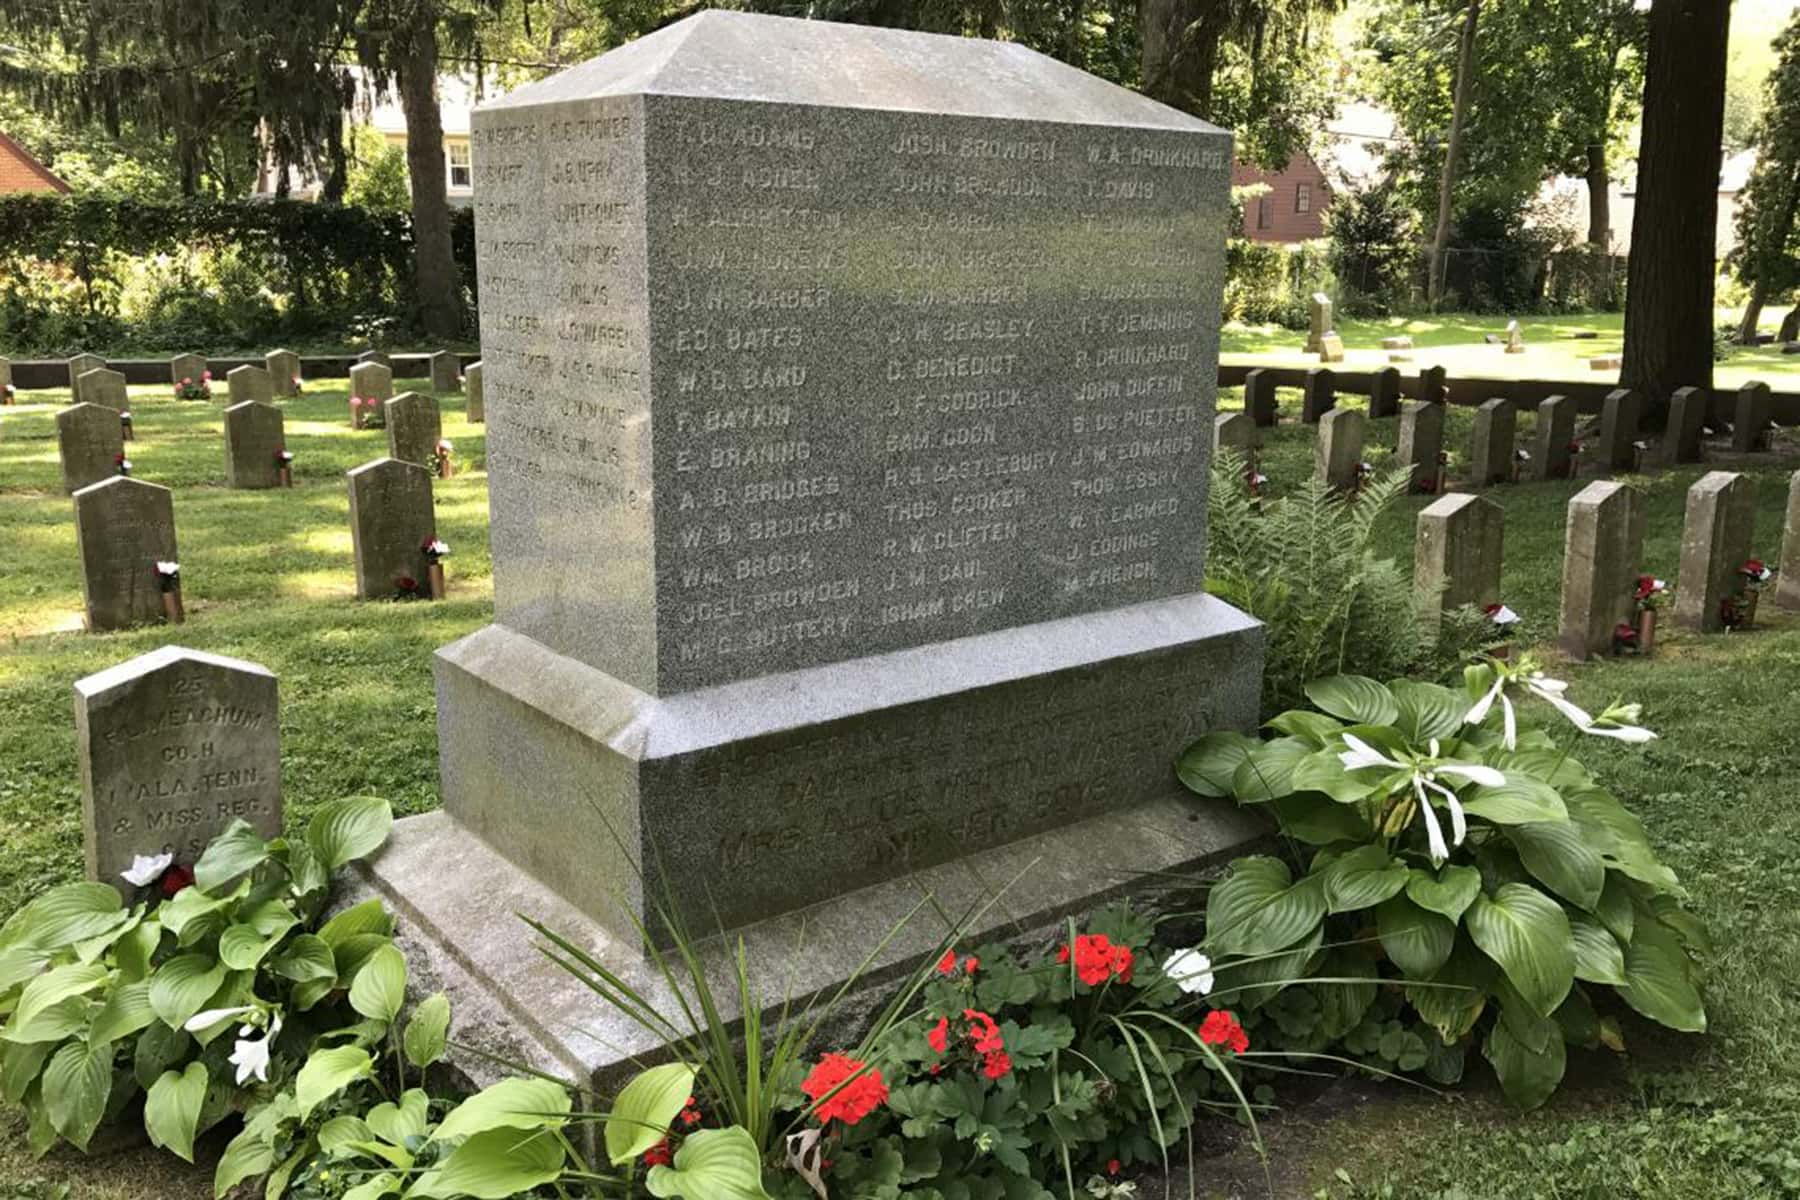 Confederate monument placed in storage at Wisconsin Veterans